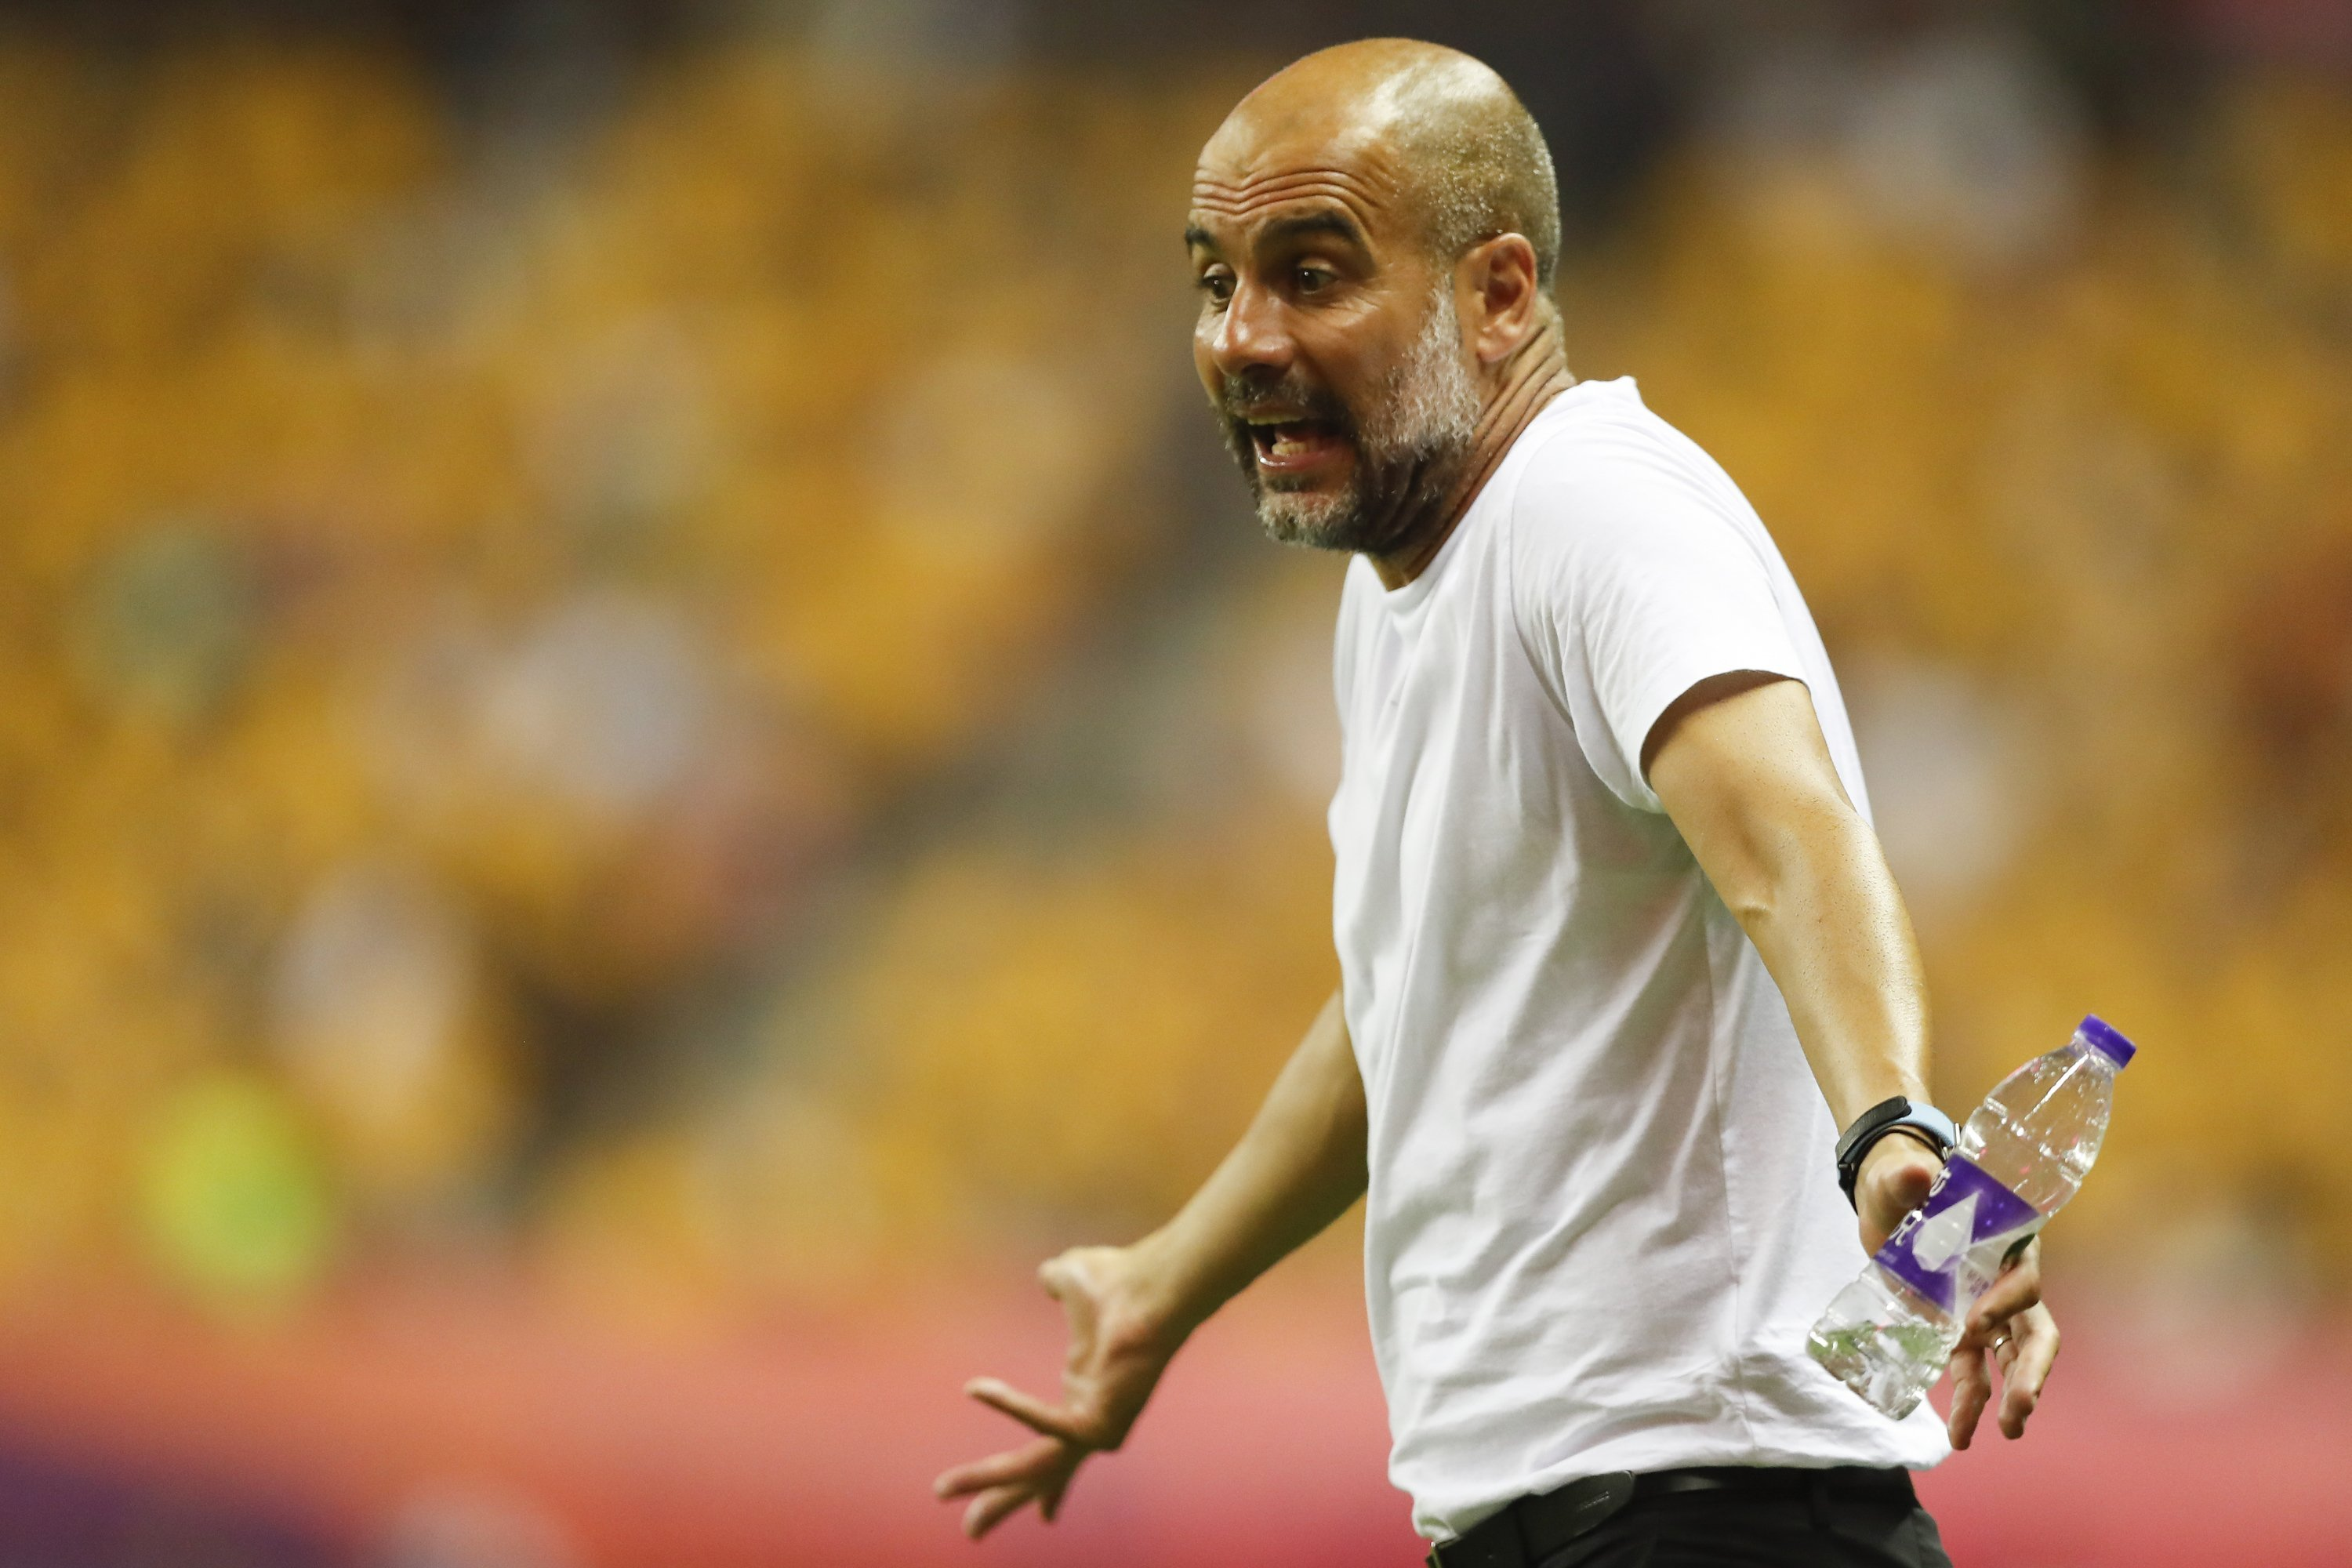 Pep Guardiola hits back at claims Man City showed 'utter disrespect' in China